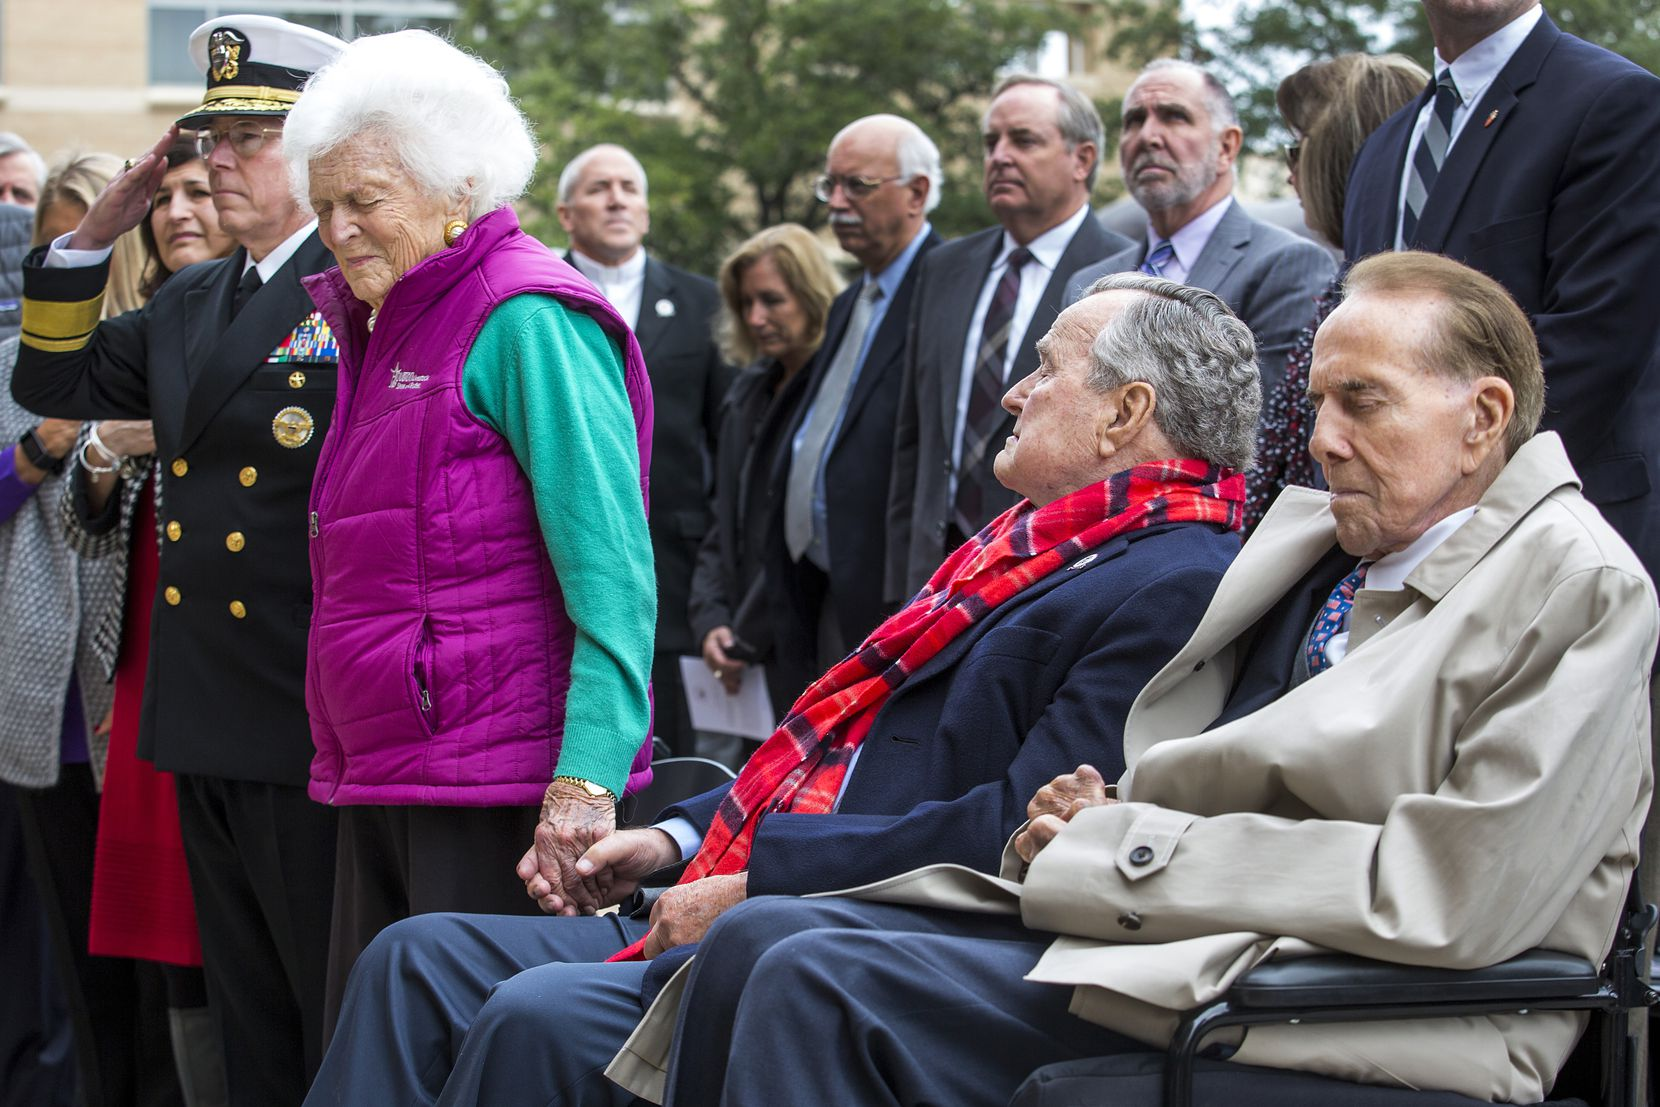 """2016: Barbara Bush stands beside former President George H.W. Bush (seated) and former Sen. Bob Dole during the playing of """"Taps"""" during a commemoration of the 75th anniversary of Pearl Harbor at the George Bush Presidential Library in College Station, Texas."""